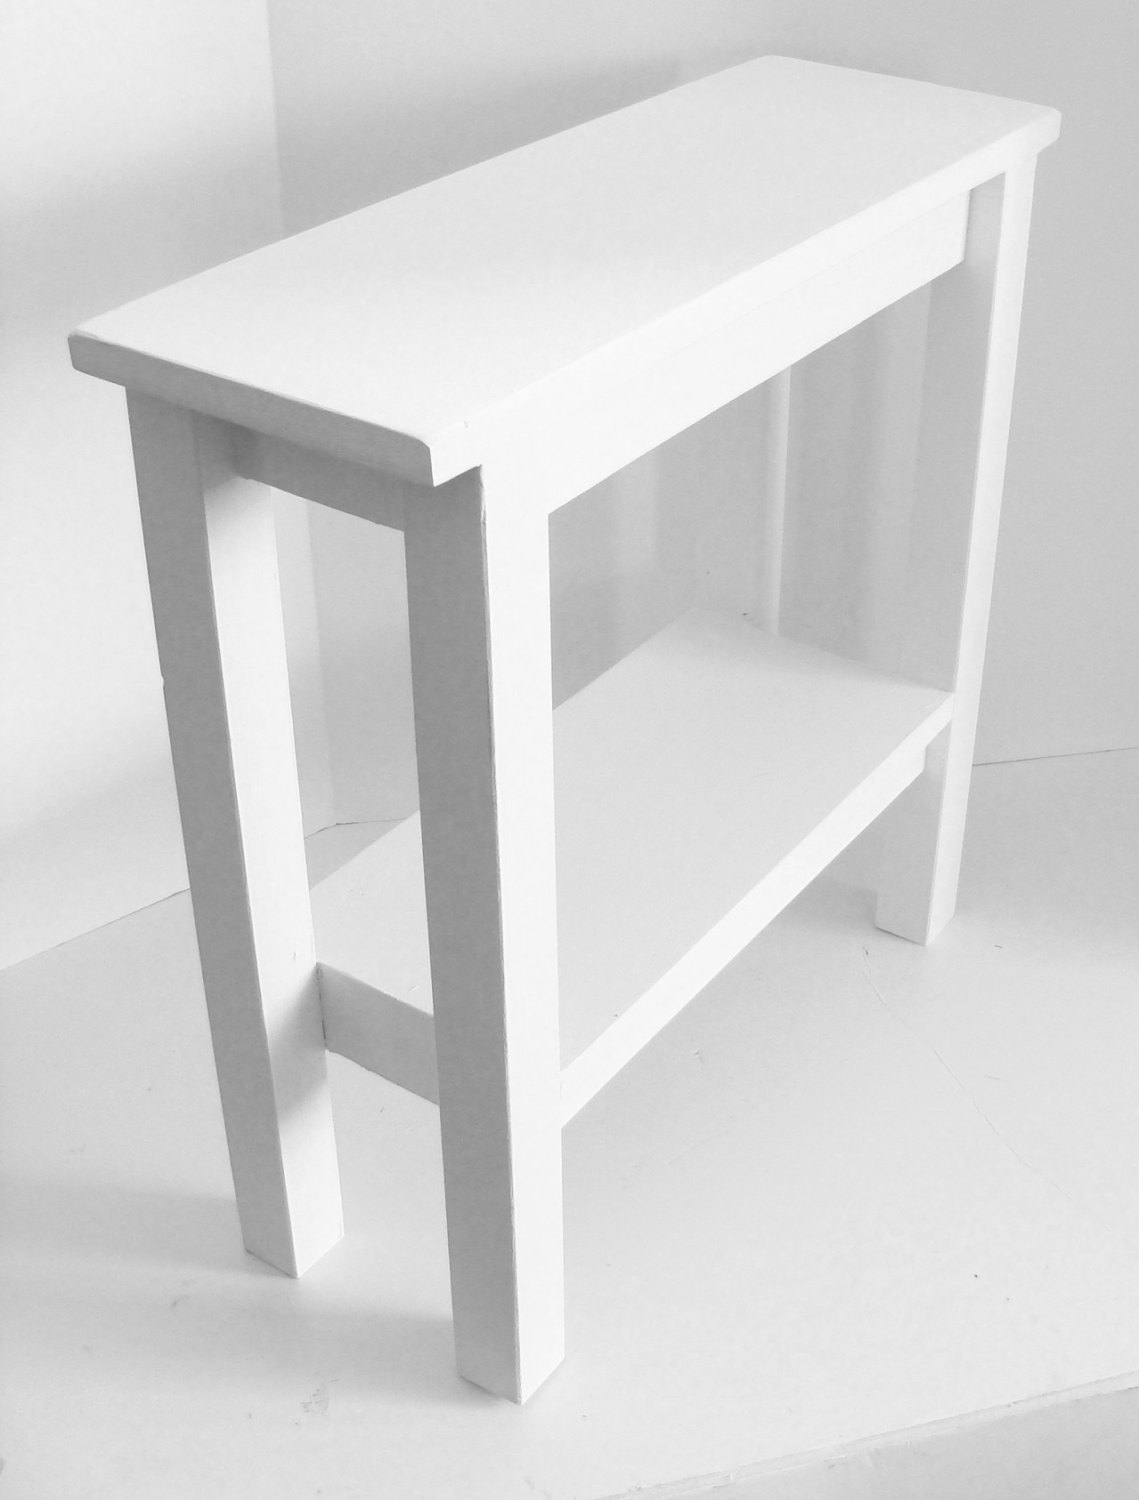 Amazing Design Of The White Wooden Small Side Table Ideas With White Wooden Shelves And White Wall Ideas